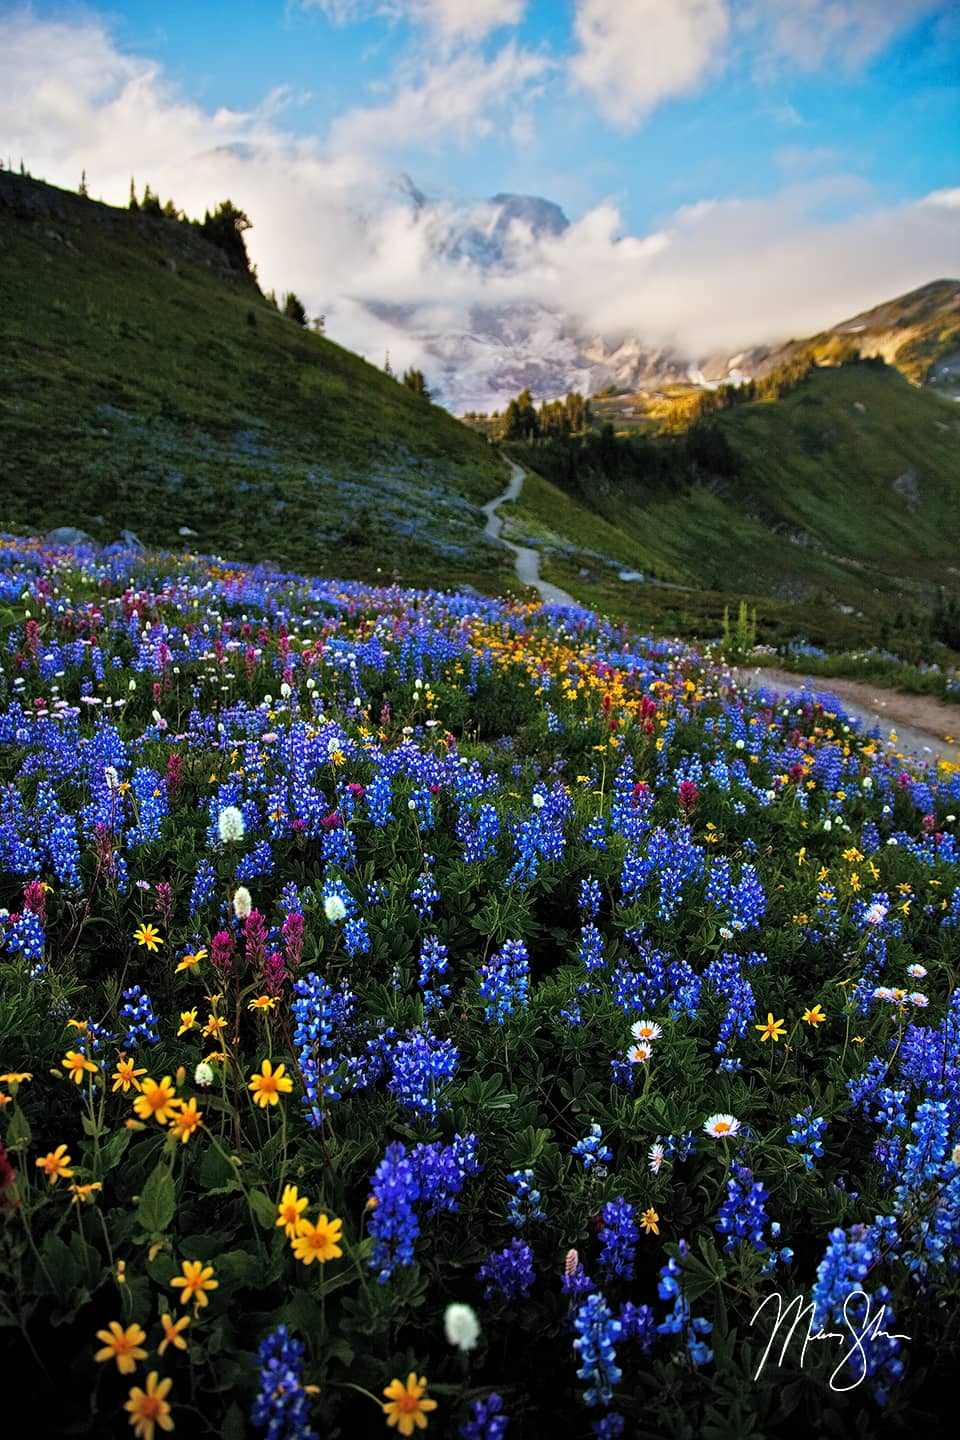 Open edition fine art print of Mount Rainier Wildflowers from Mickey Shannon Photography. Location: Mount Rainier National Park, Washington, USA